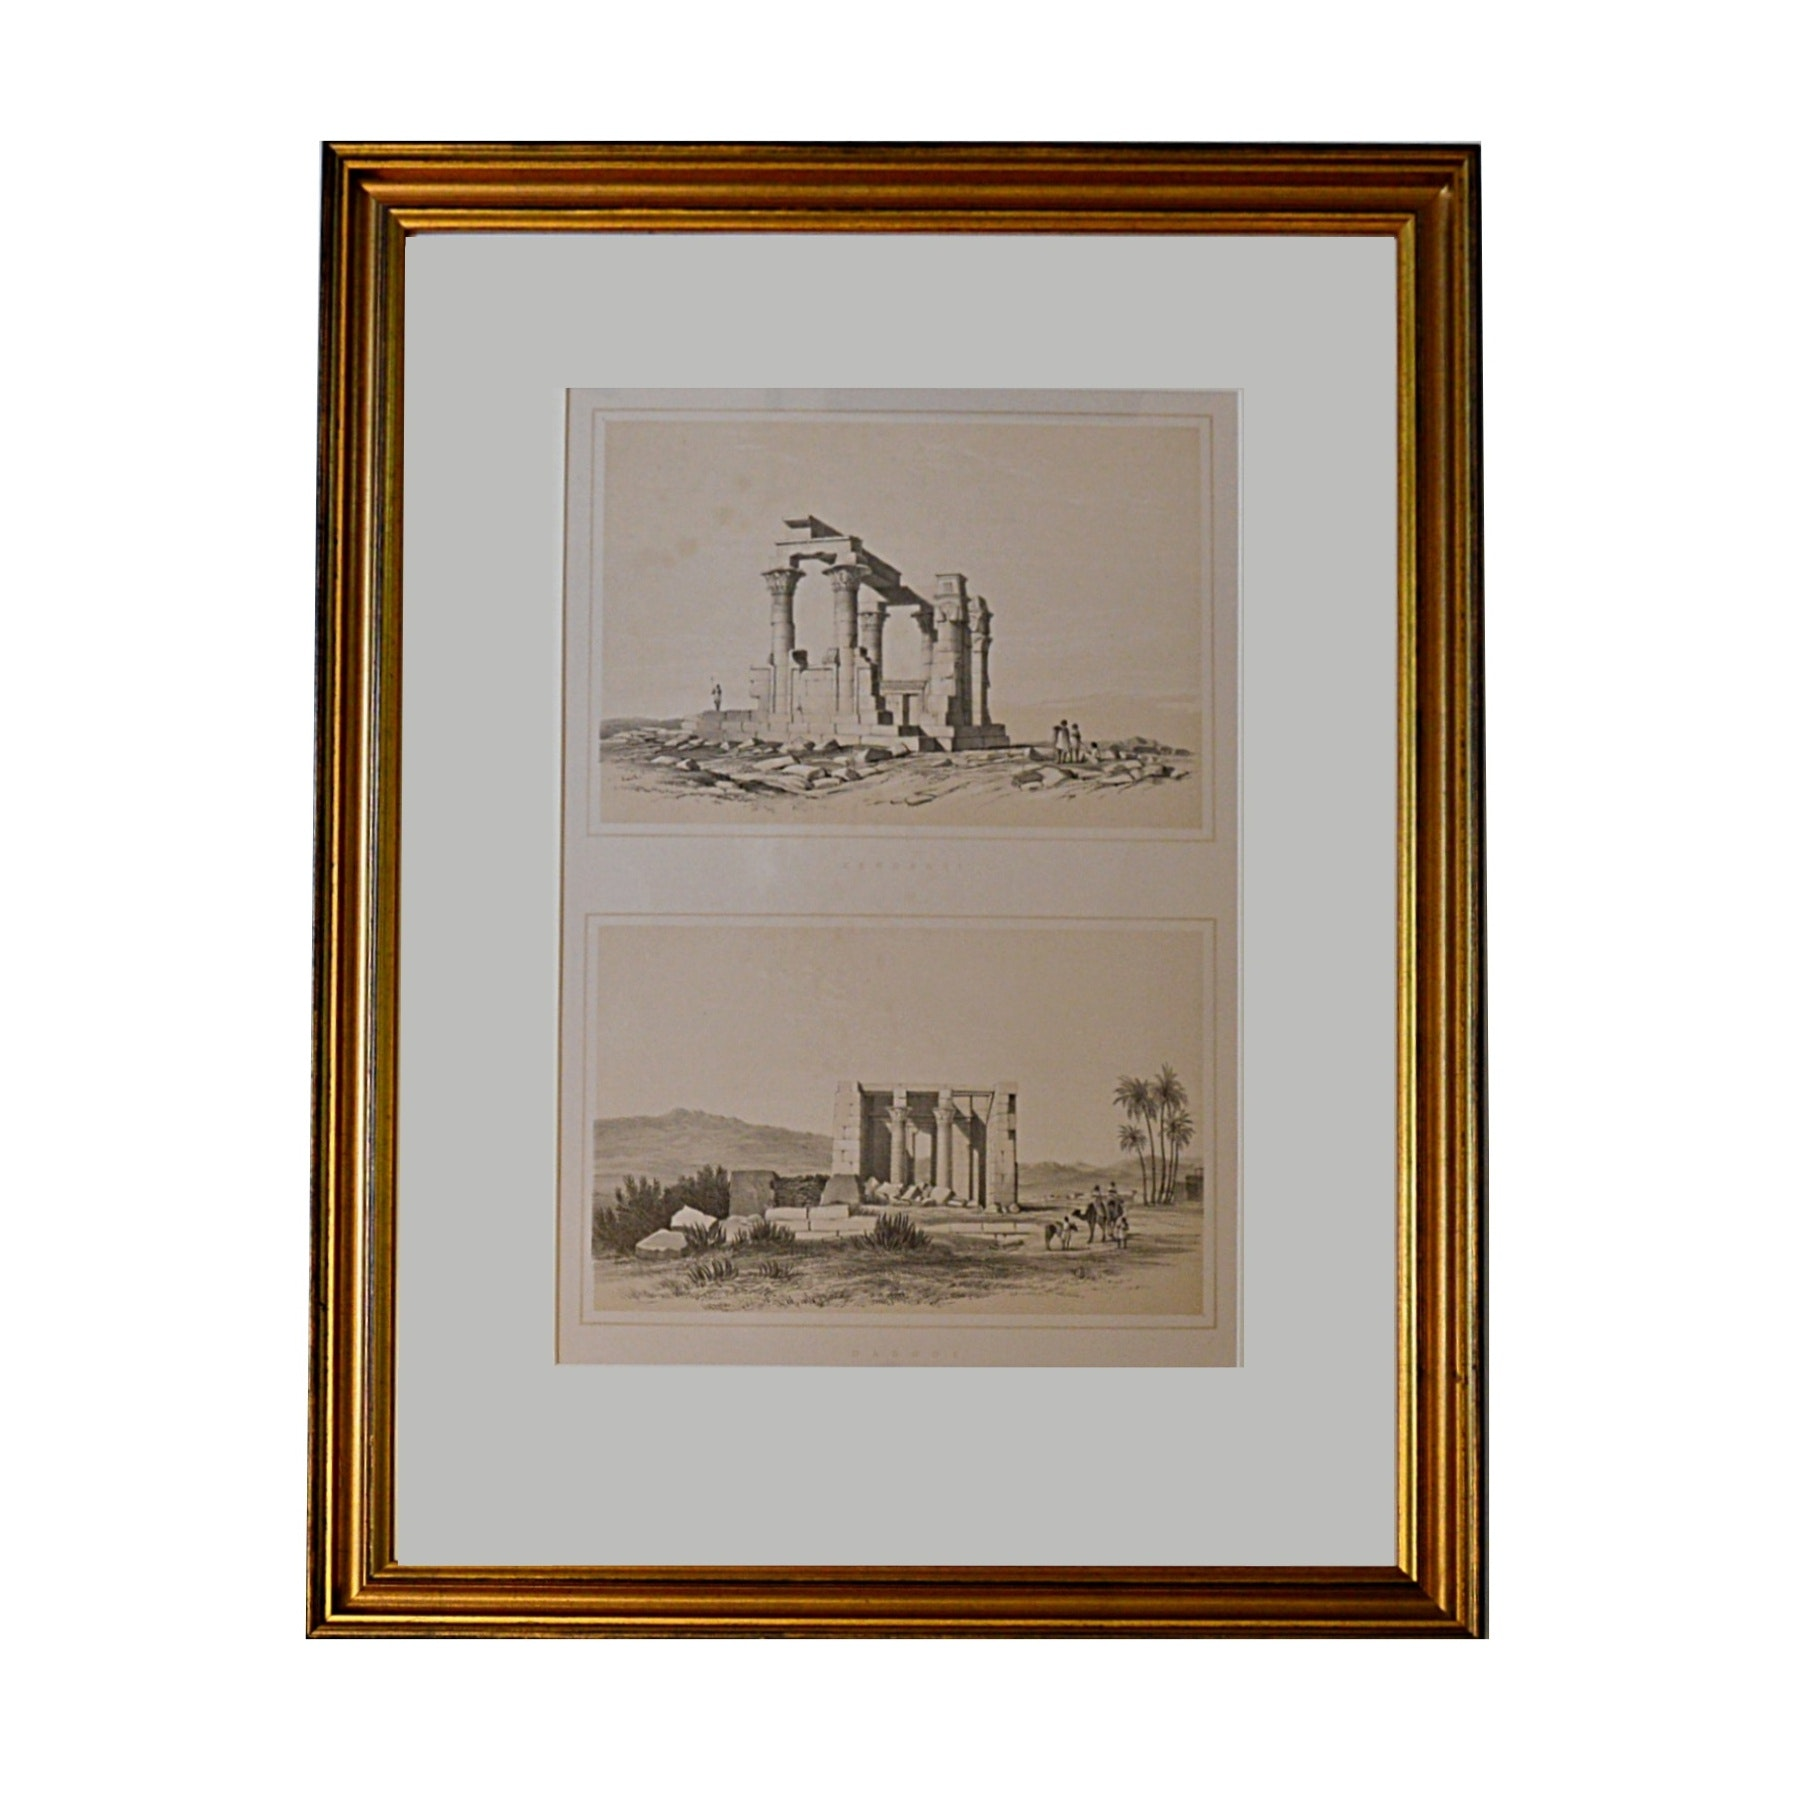 """19th Century Henry Pilleau Lithograph Titled """"Kerdassy"""" and """"Dabode"""""""